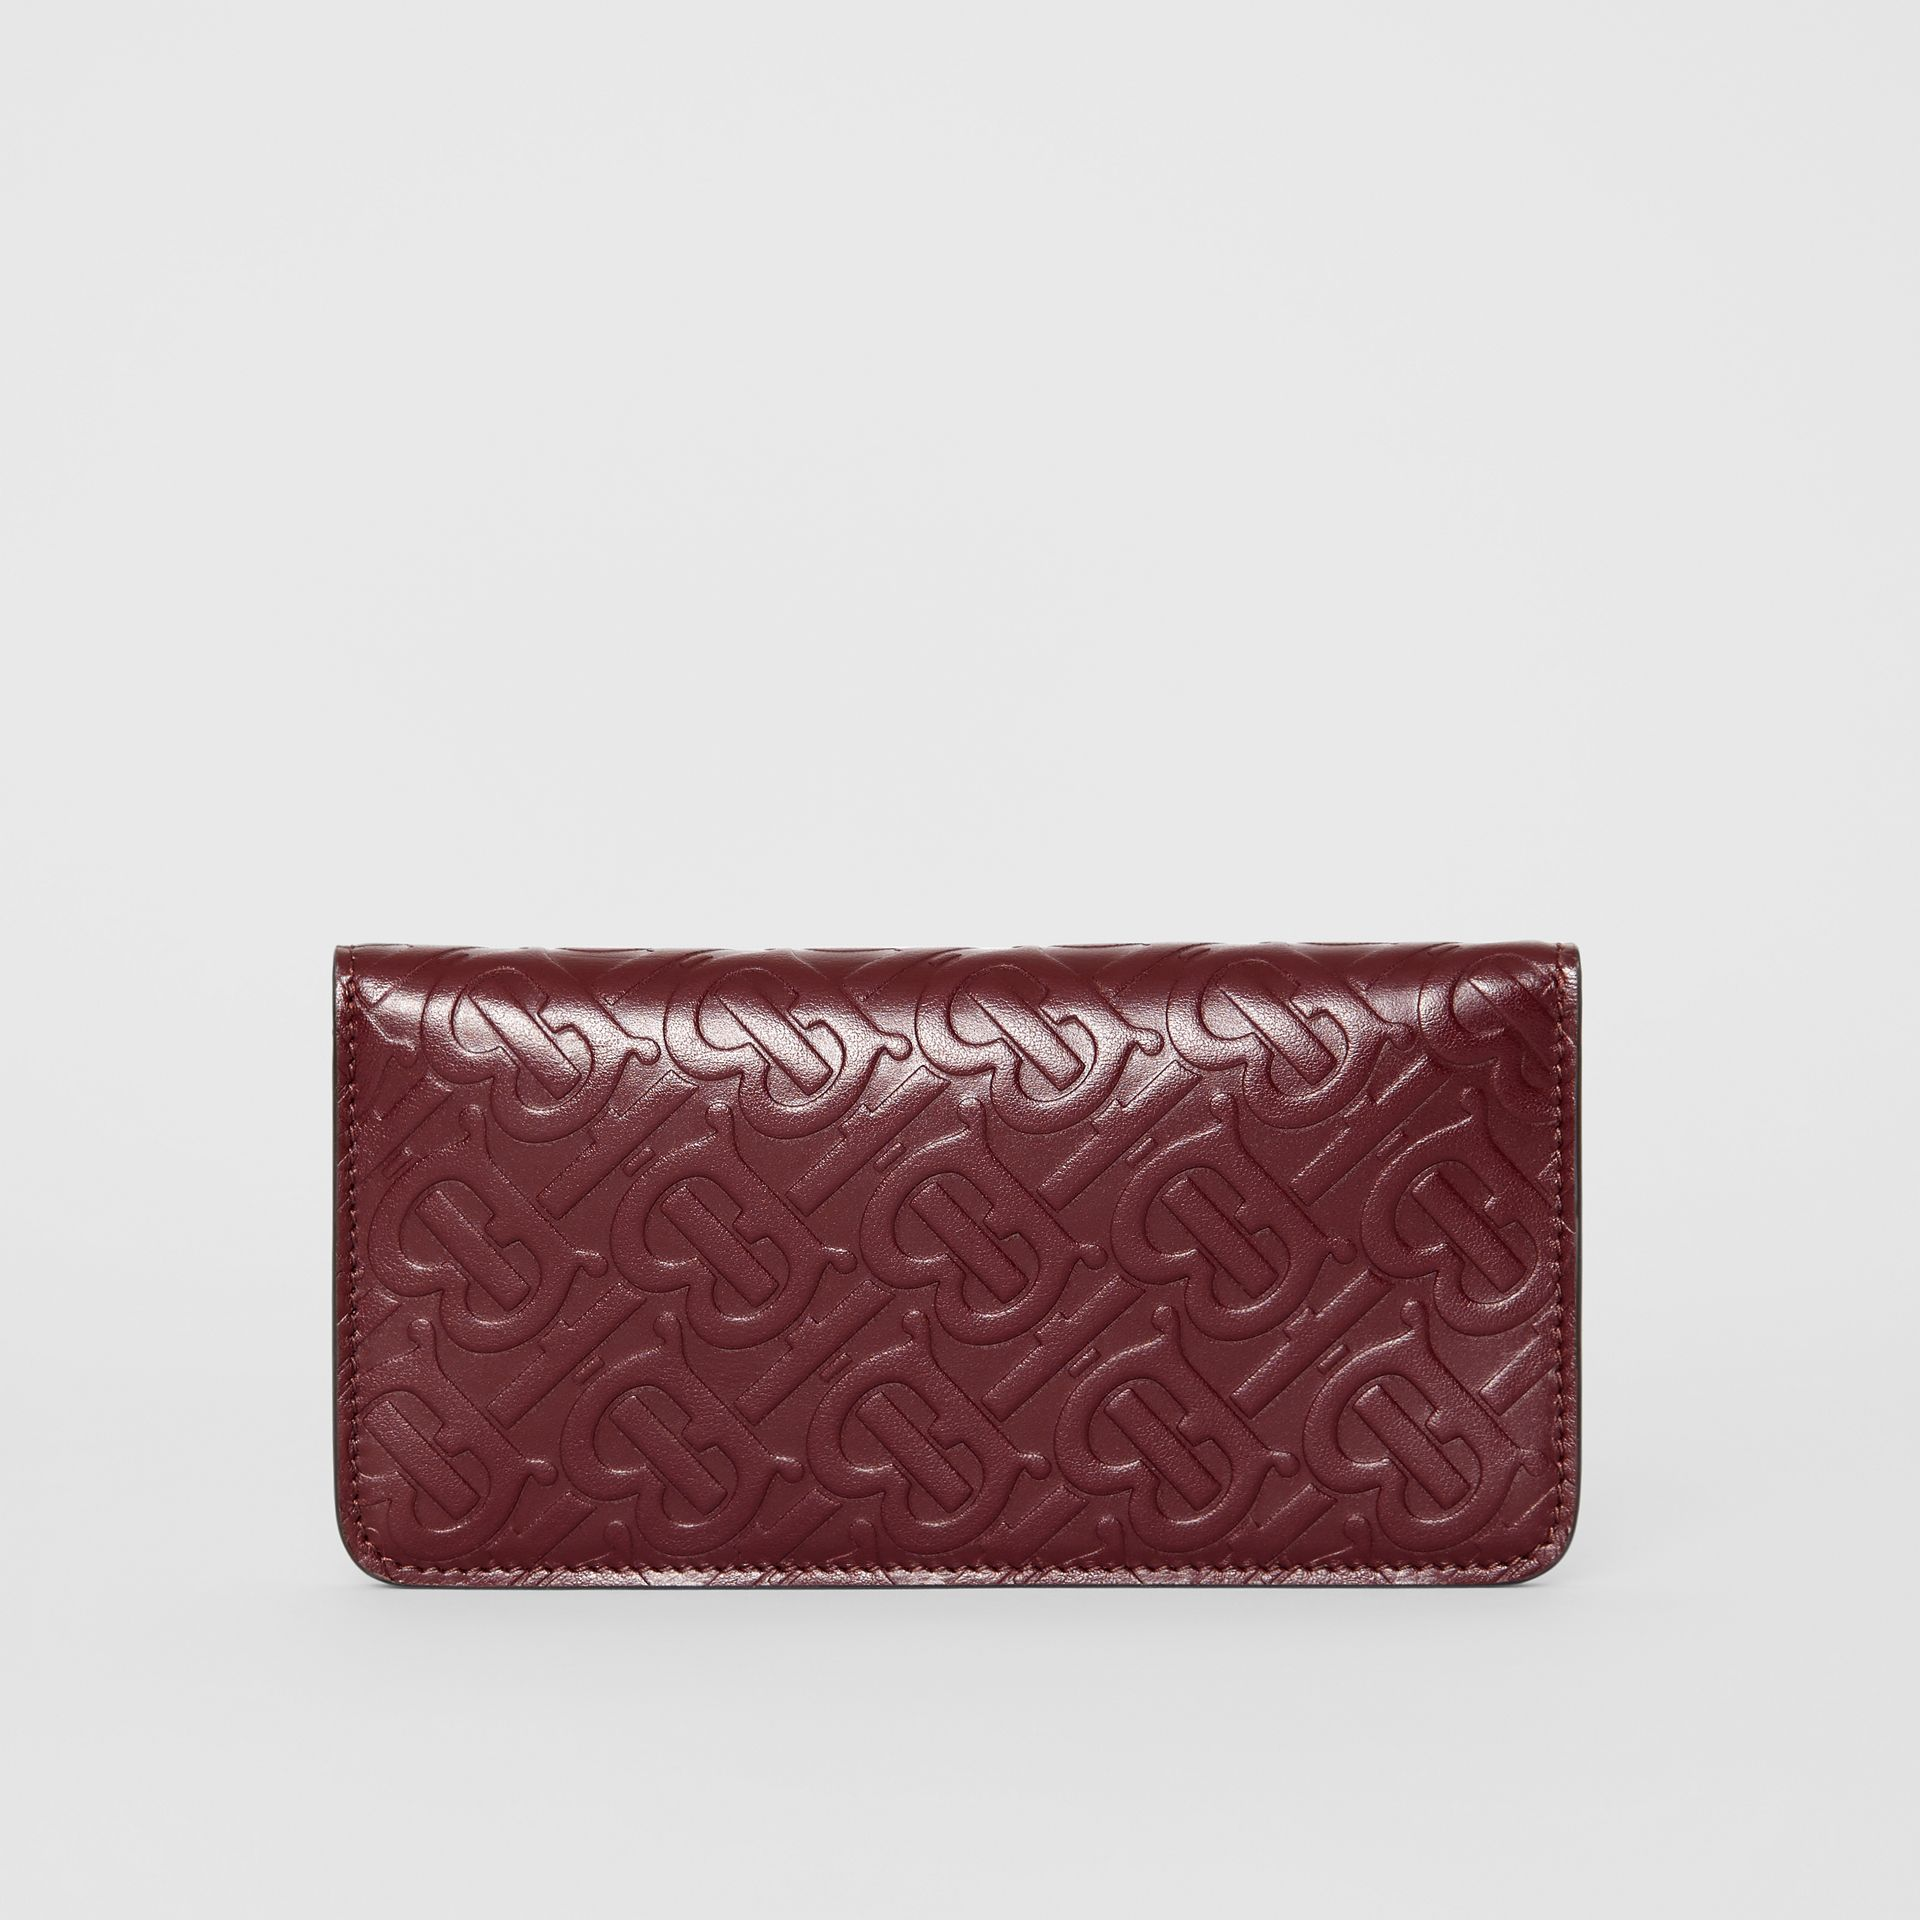 Monogram Leather Phone Wallet in Oxblood - Women | Burberry United Kingdom - gallery image 5